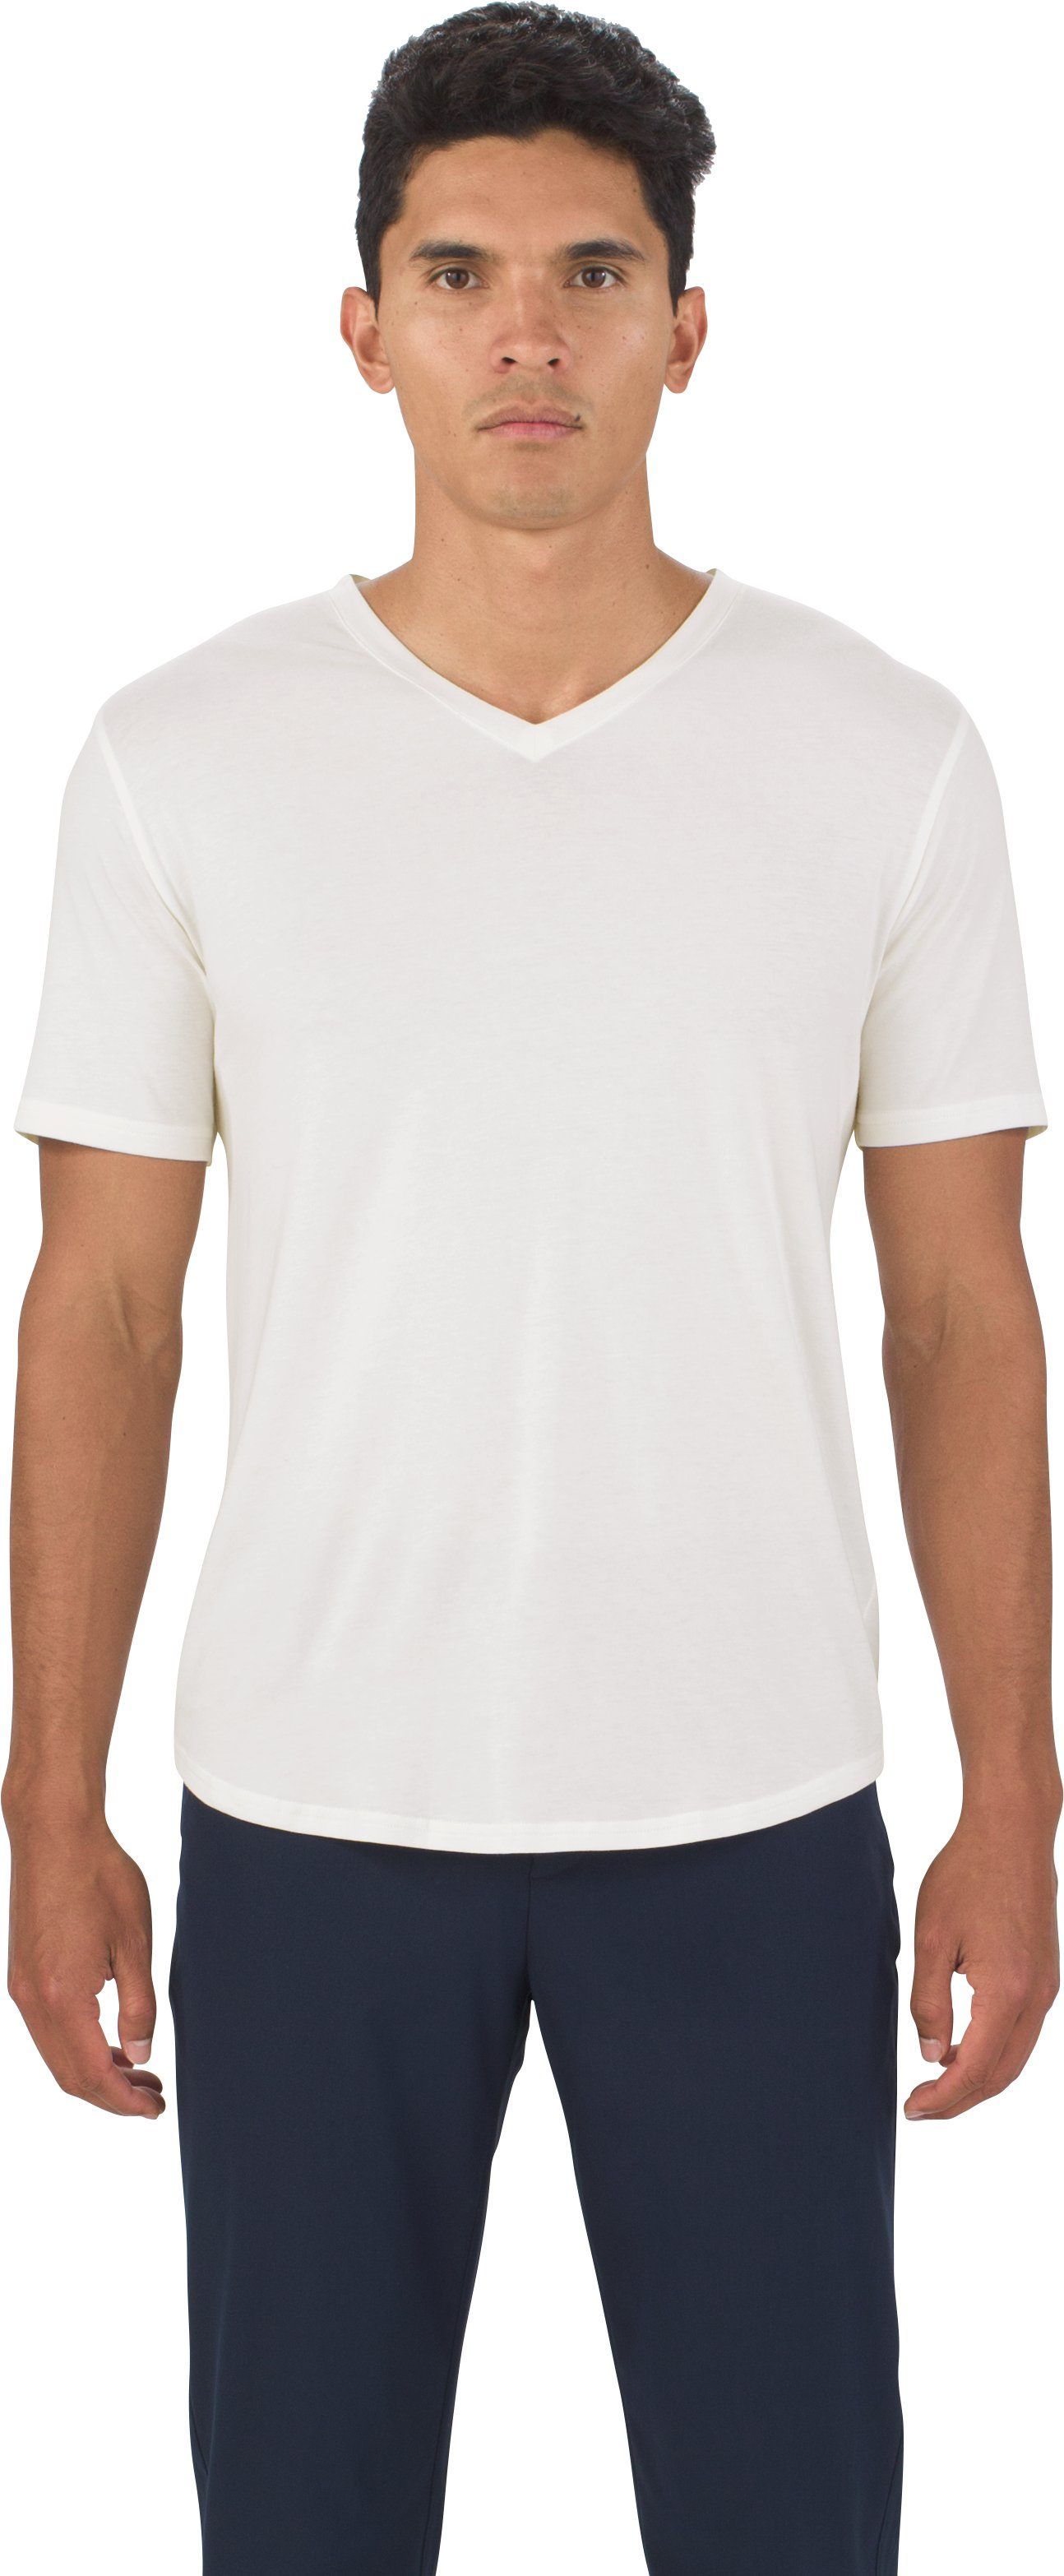 UAS Highline Cashmere-Cotton V-Neck, White, undefined